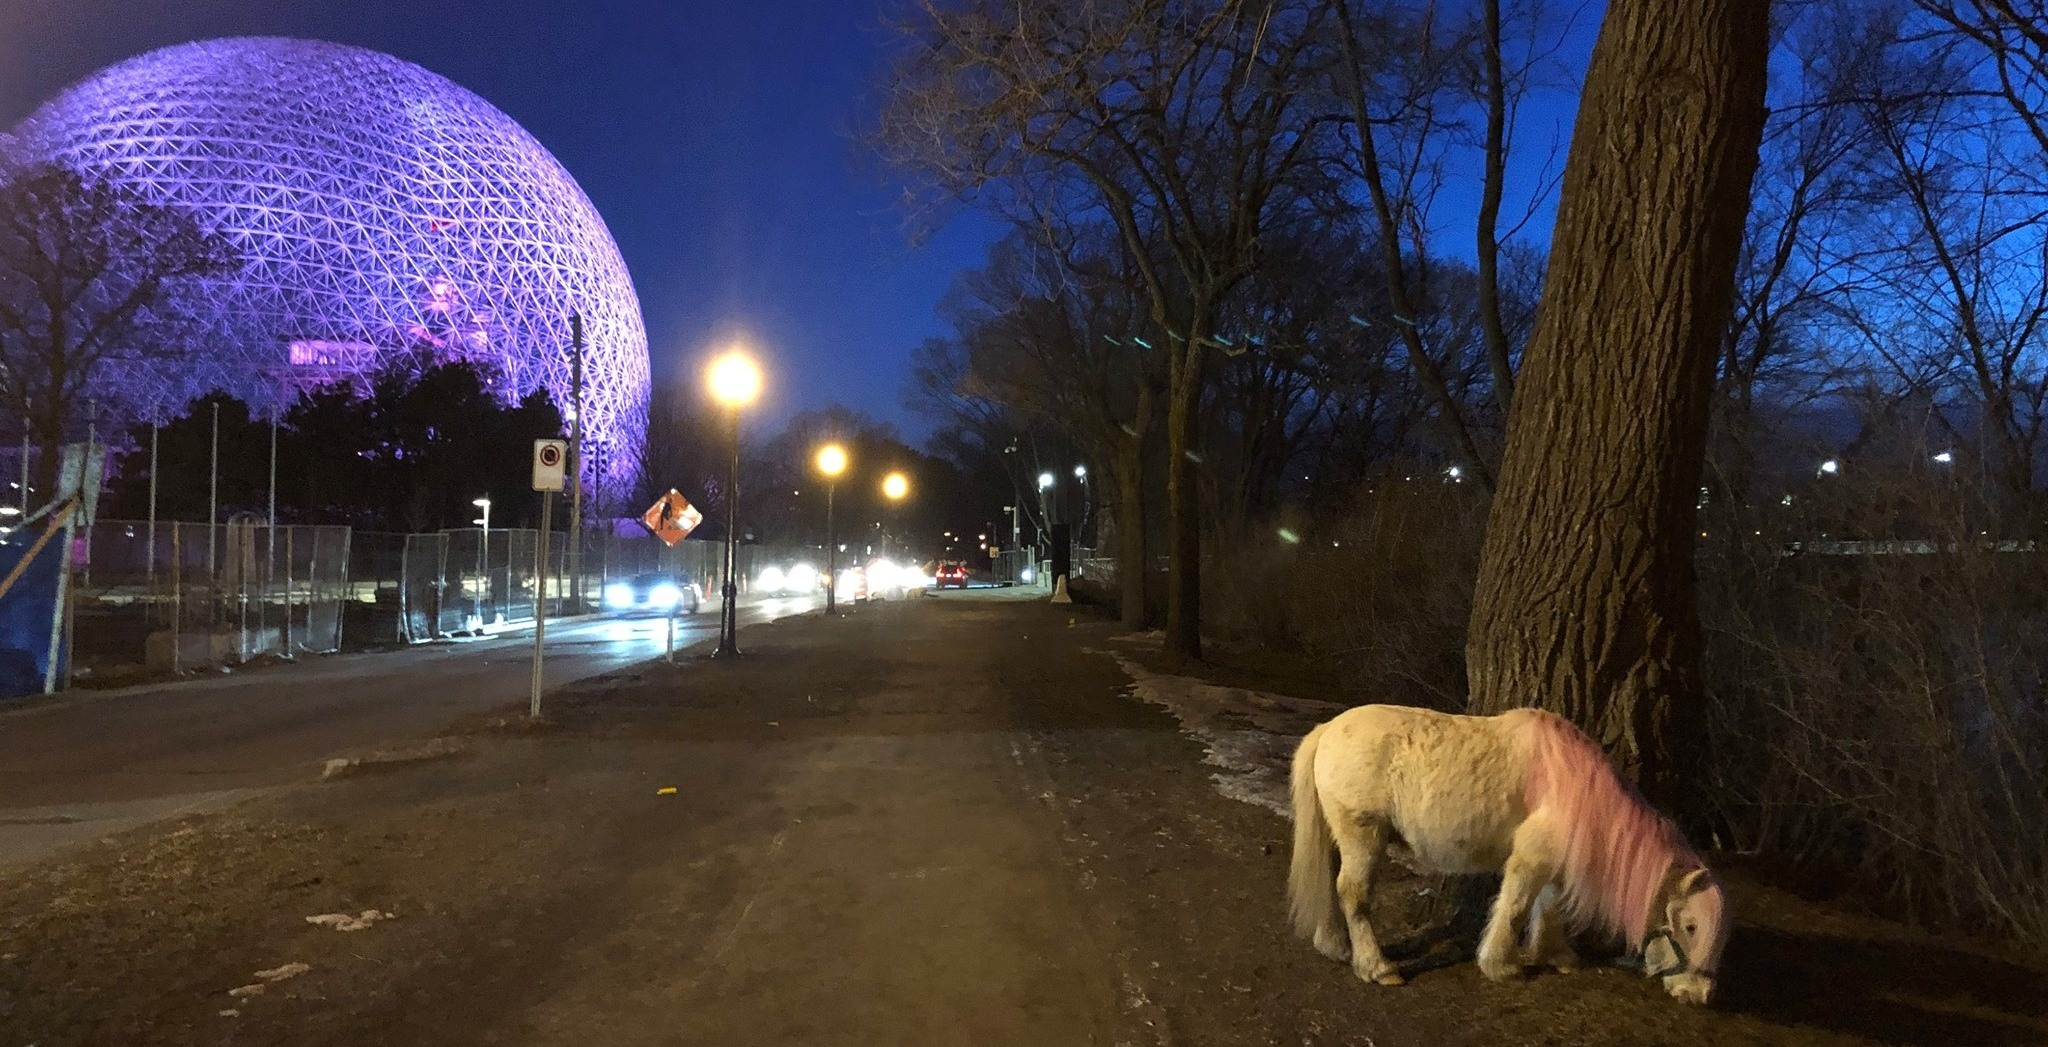 A mysterious mini pink-maned pony has been spotted in Montreal (PHOTOS)